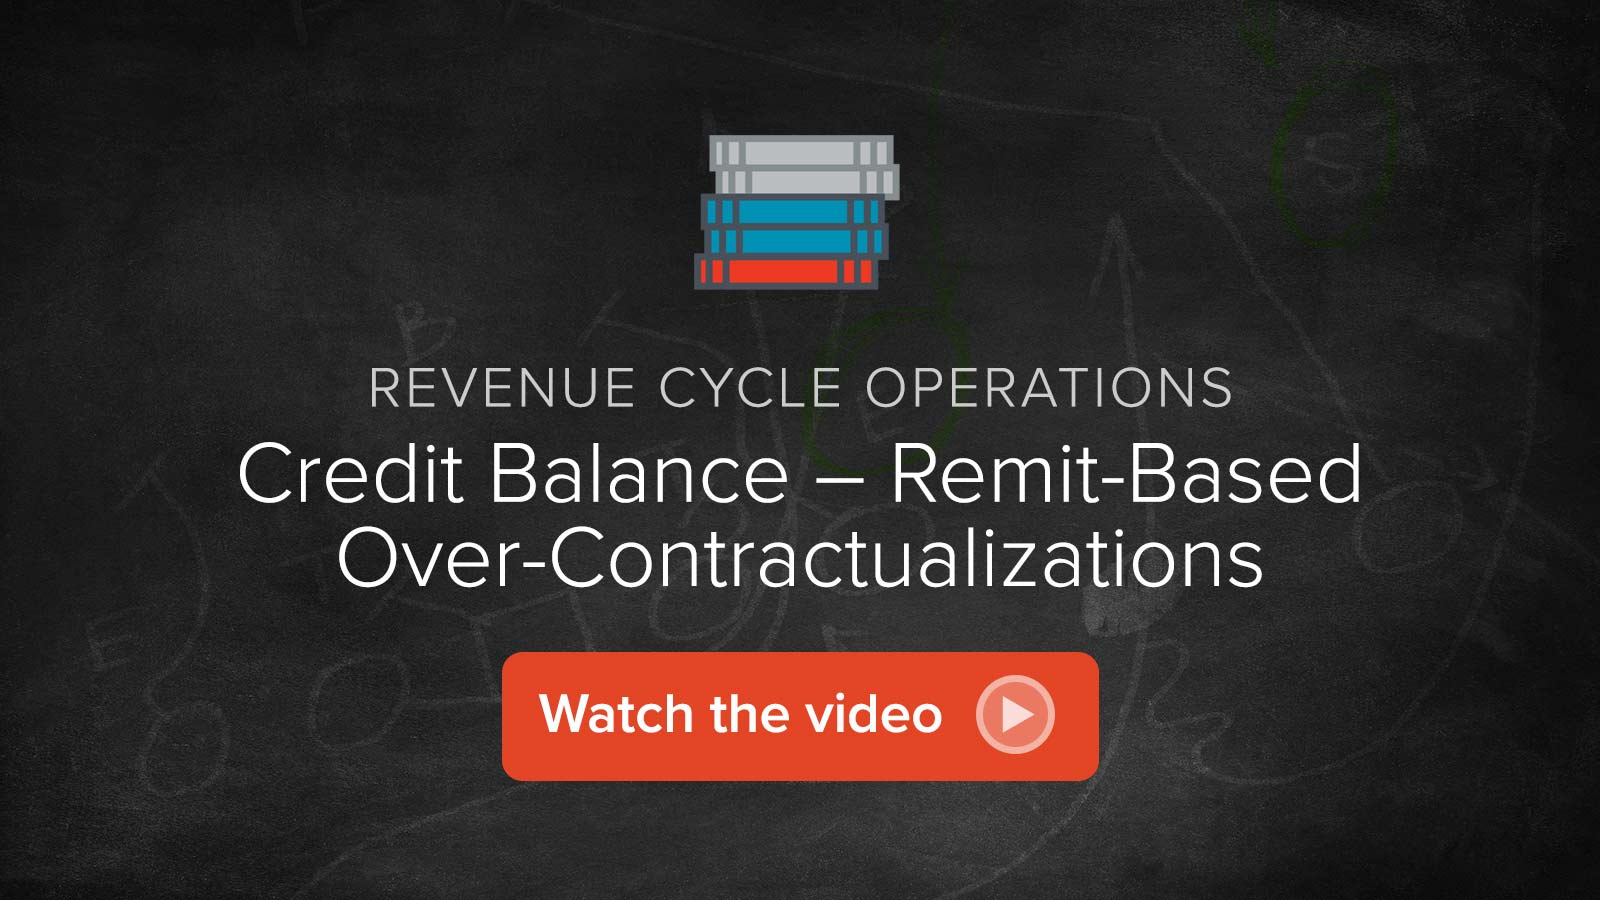 Watch the Credit Balance – Remit-Based Over-Contractualizations  video